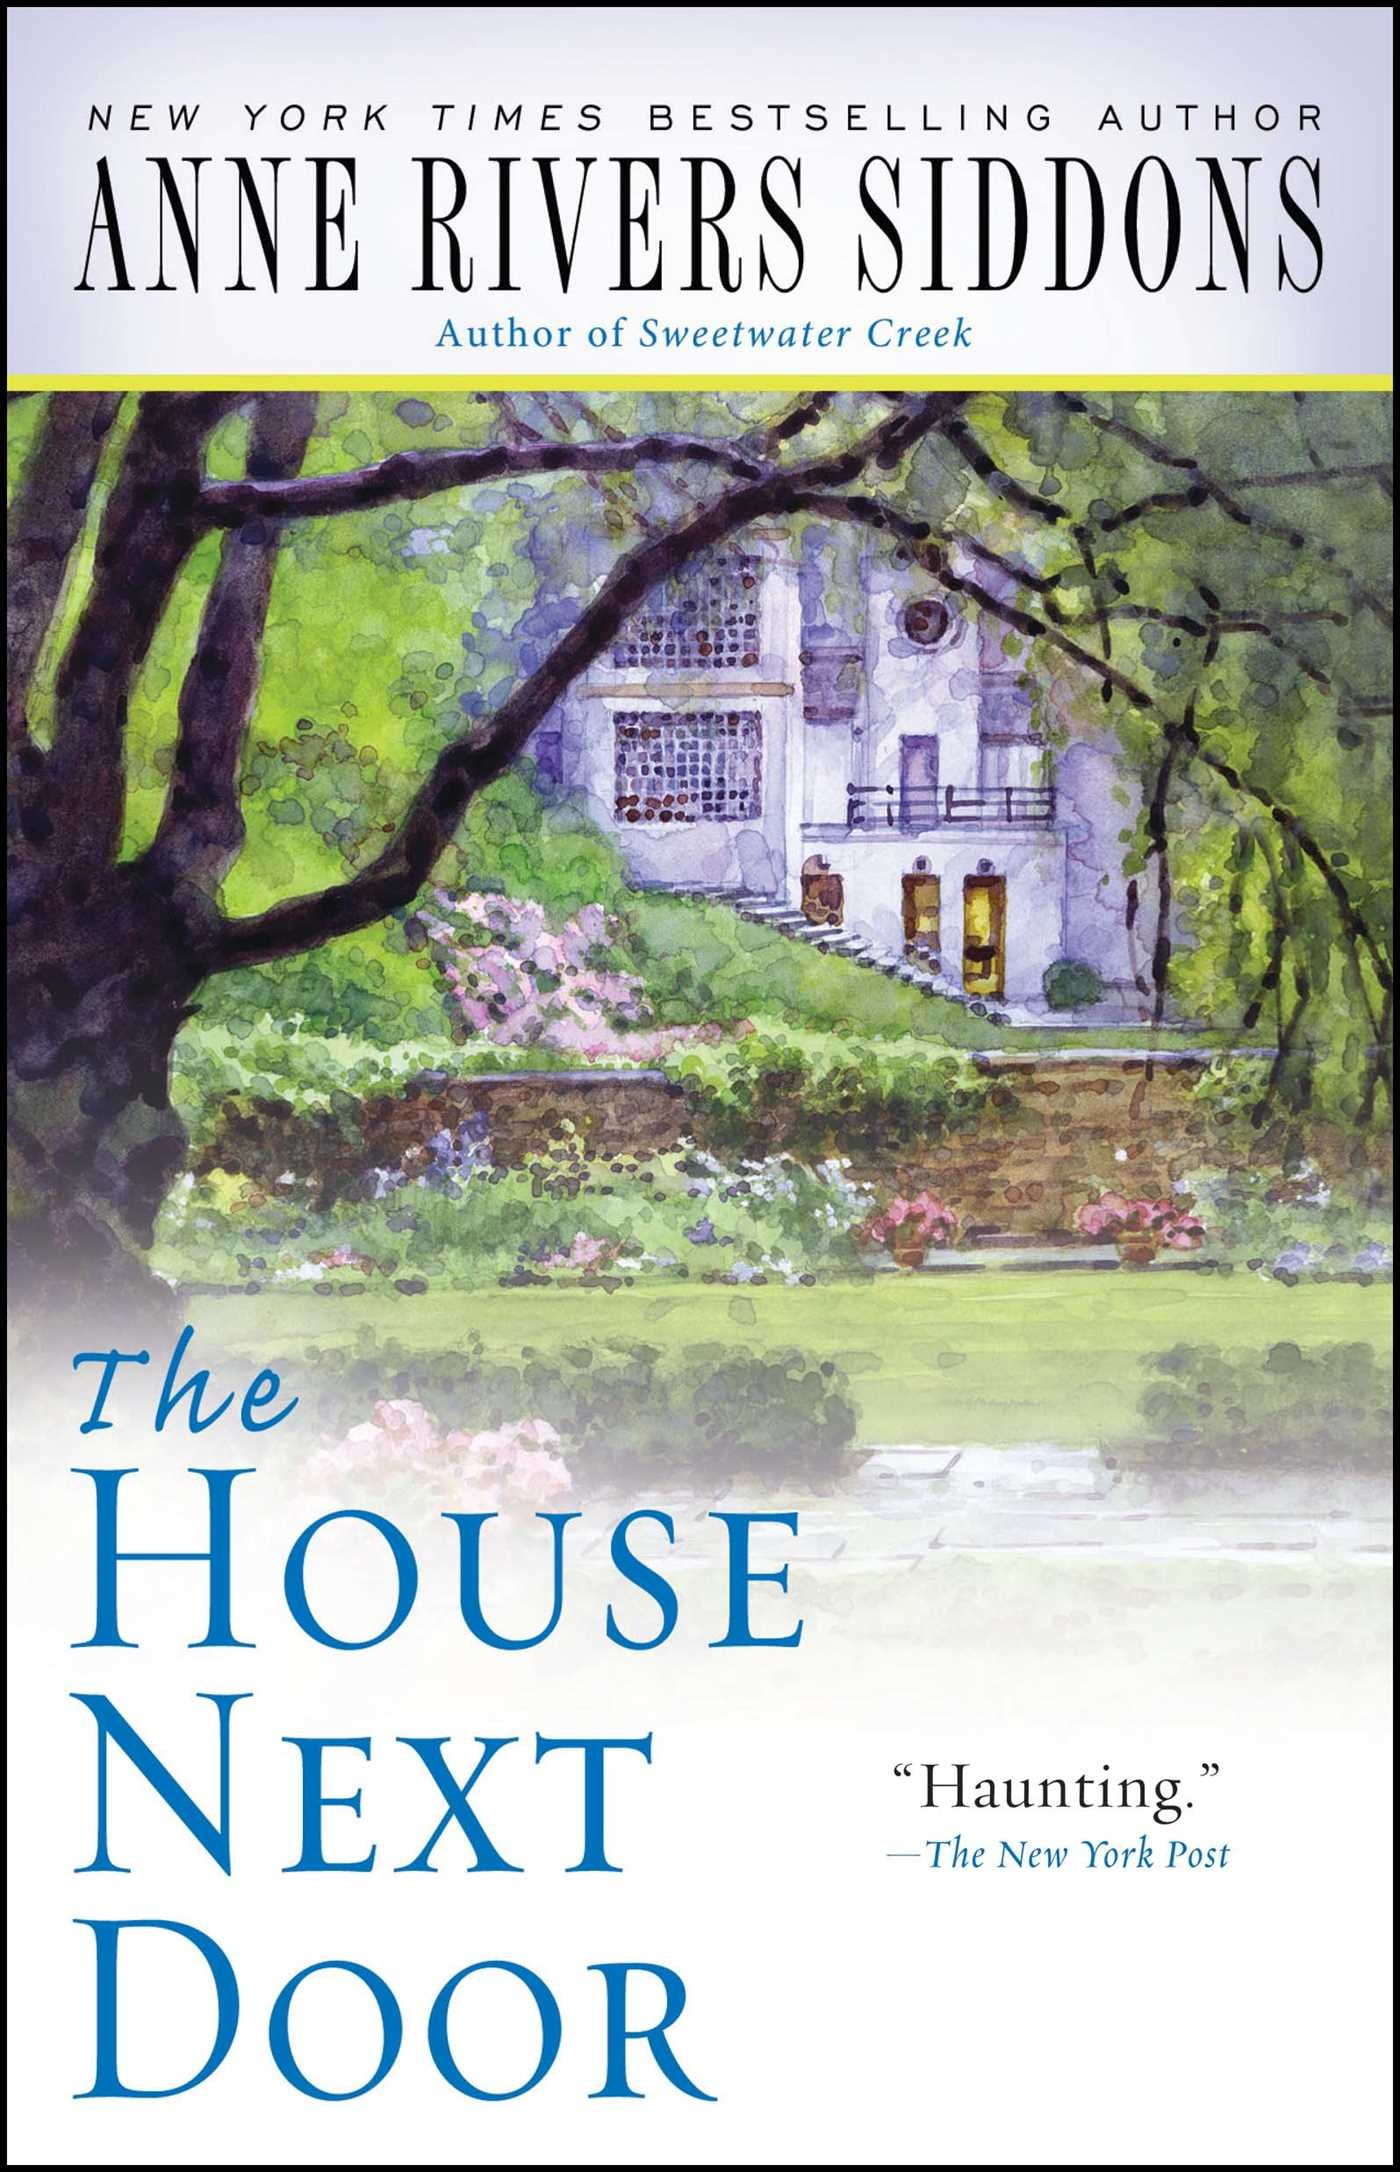 Amazon.com: The House Next Door (9781416553441): Siddons, Anne Rivers: Books